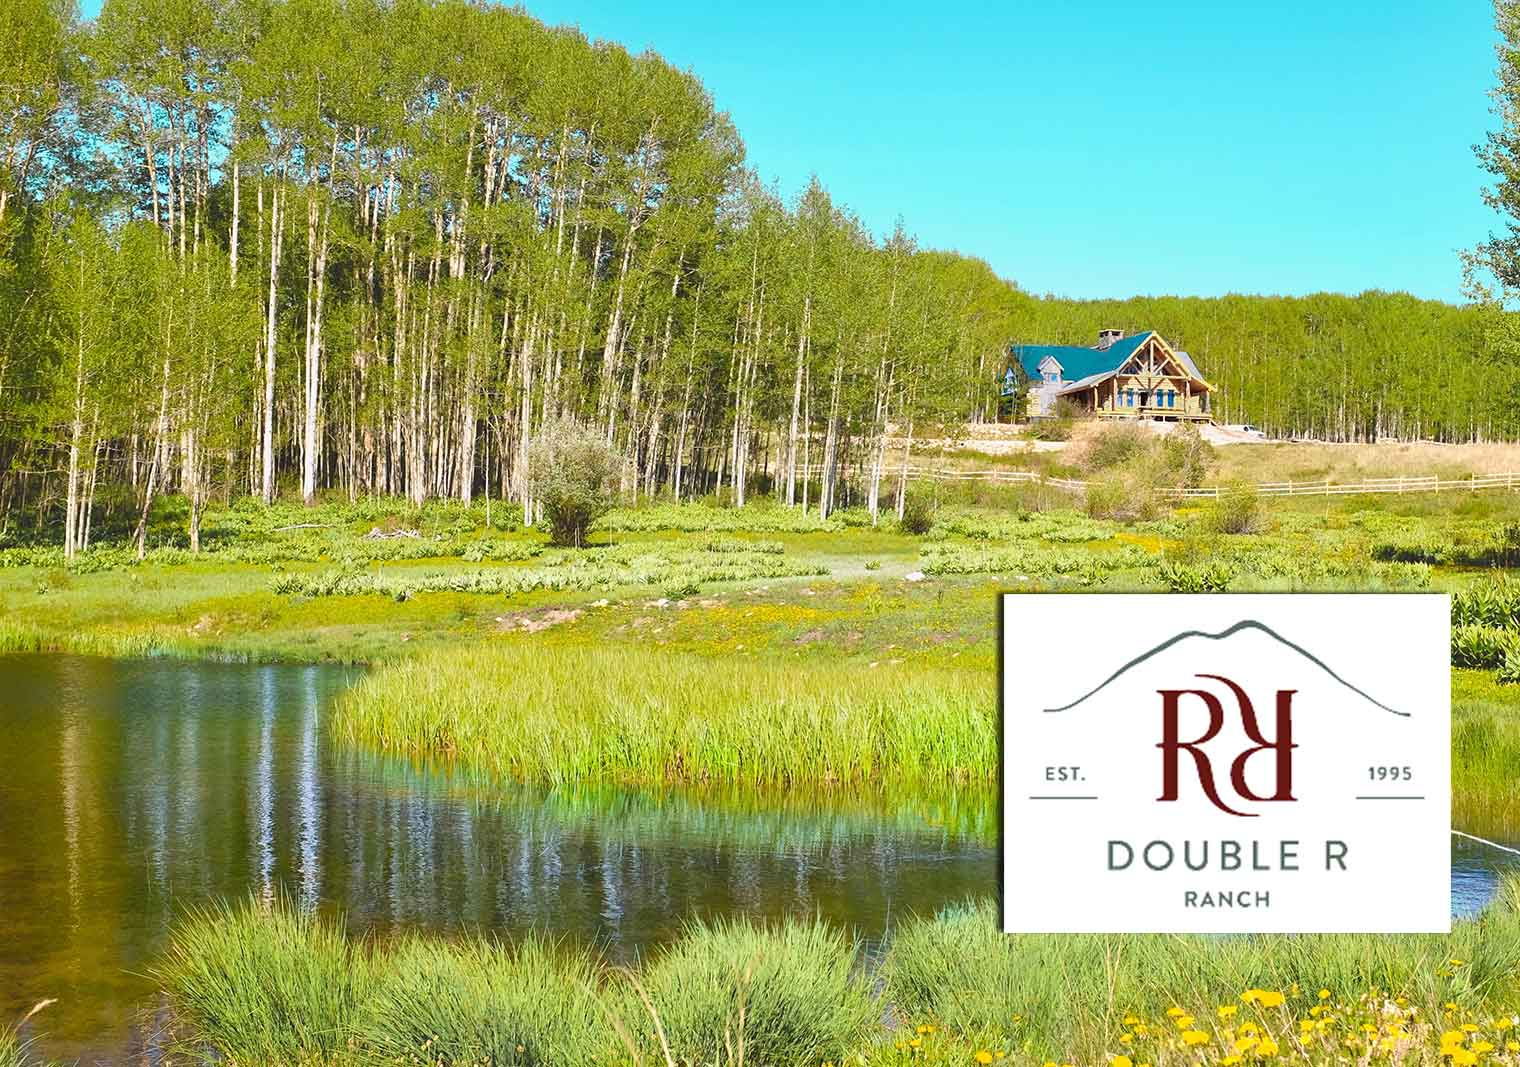 Double R Ranch, Mancos Colorado